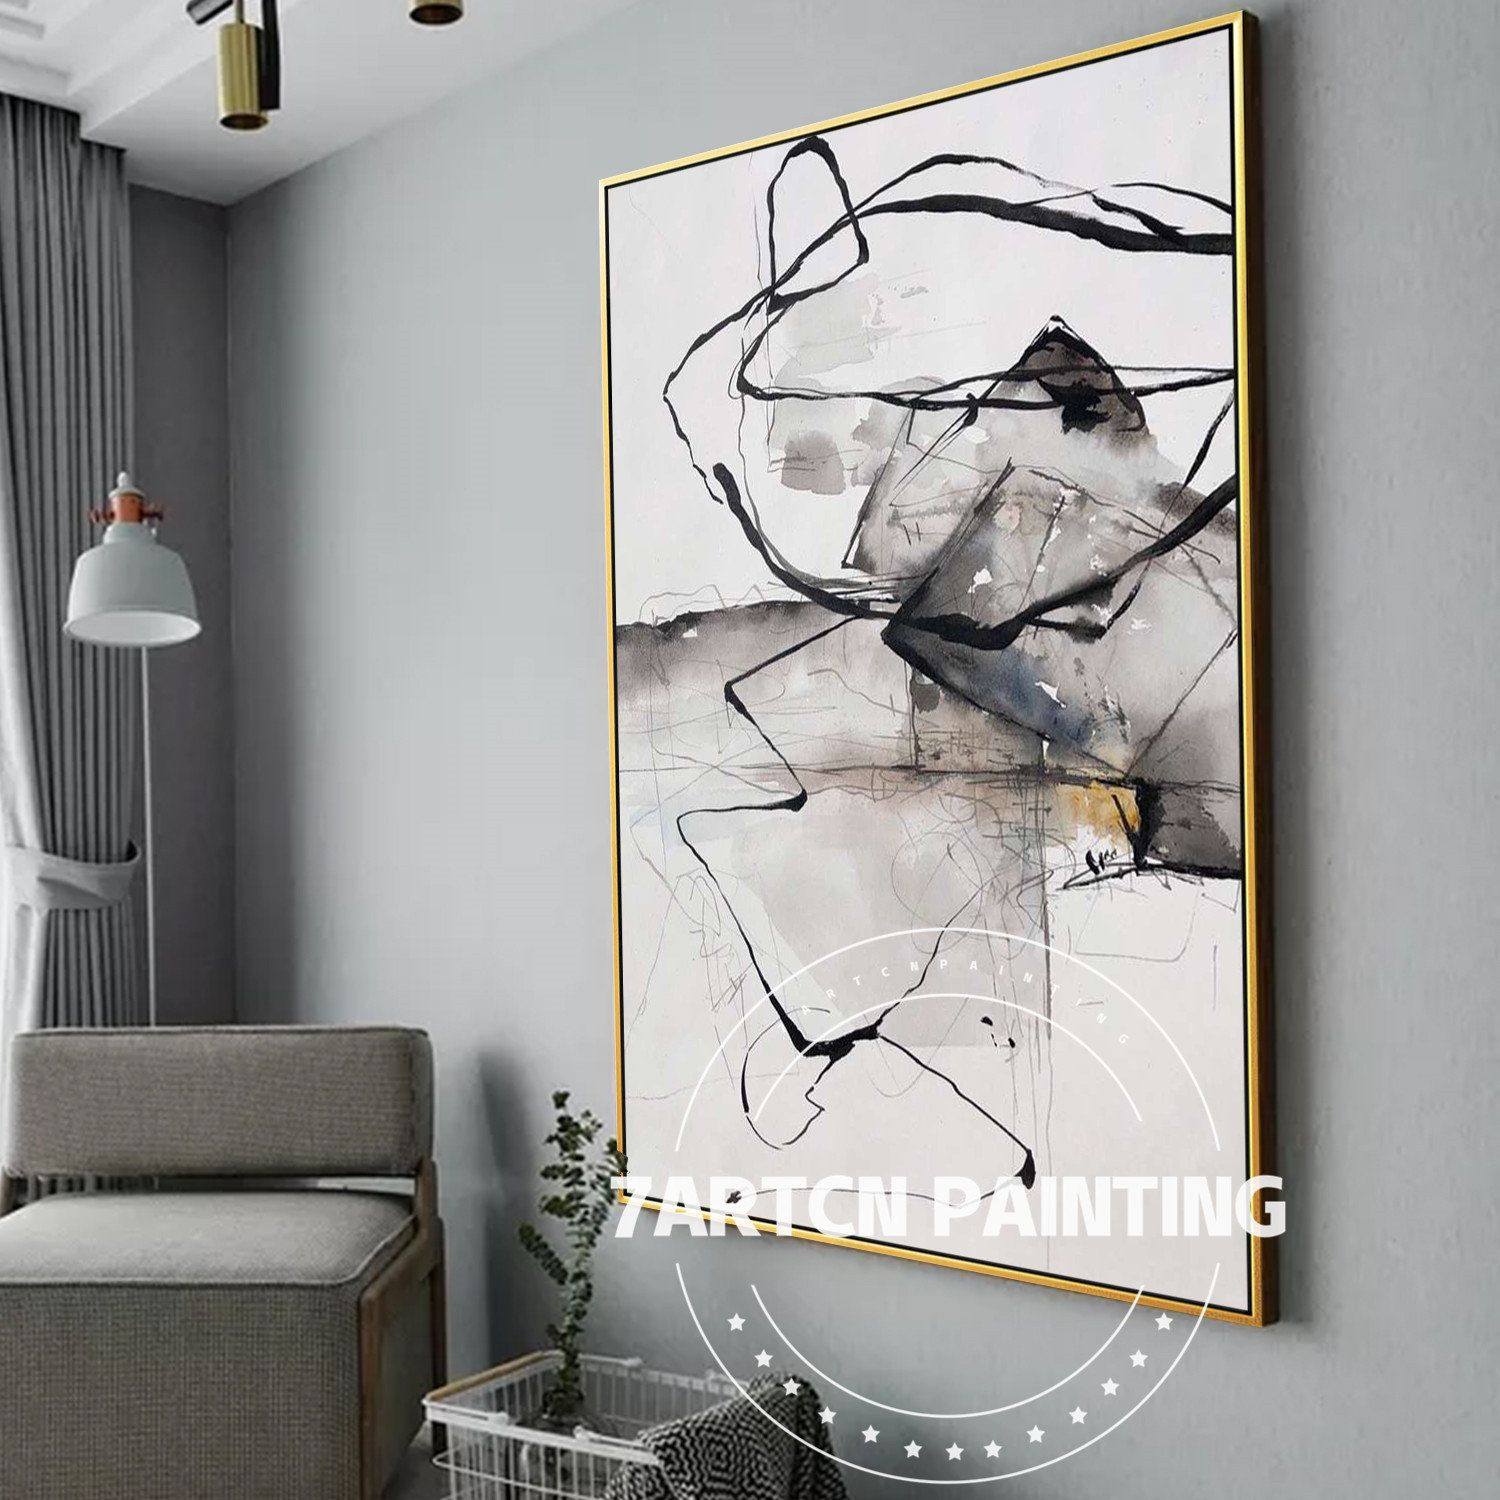 Canvas Acrylic Painting Modern Abstract Black White Framed Etsy In 2020 Linear Art White Art Painting White Frames Wall